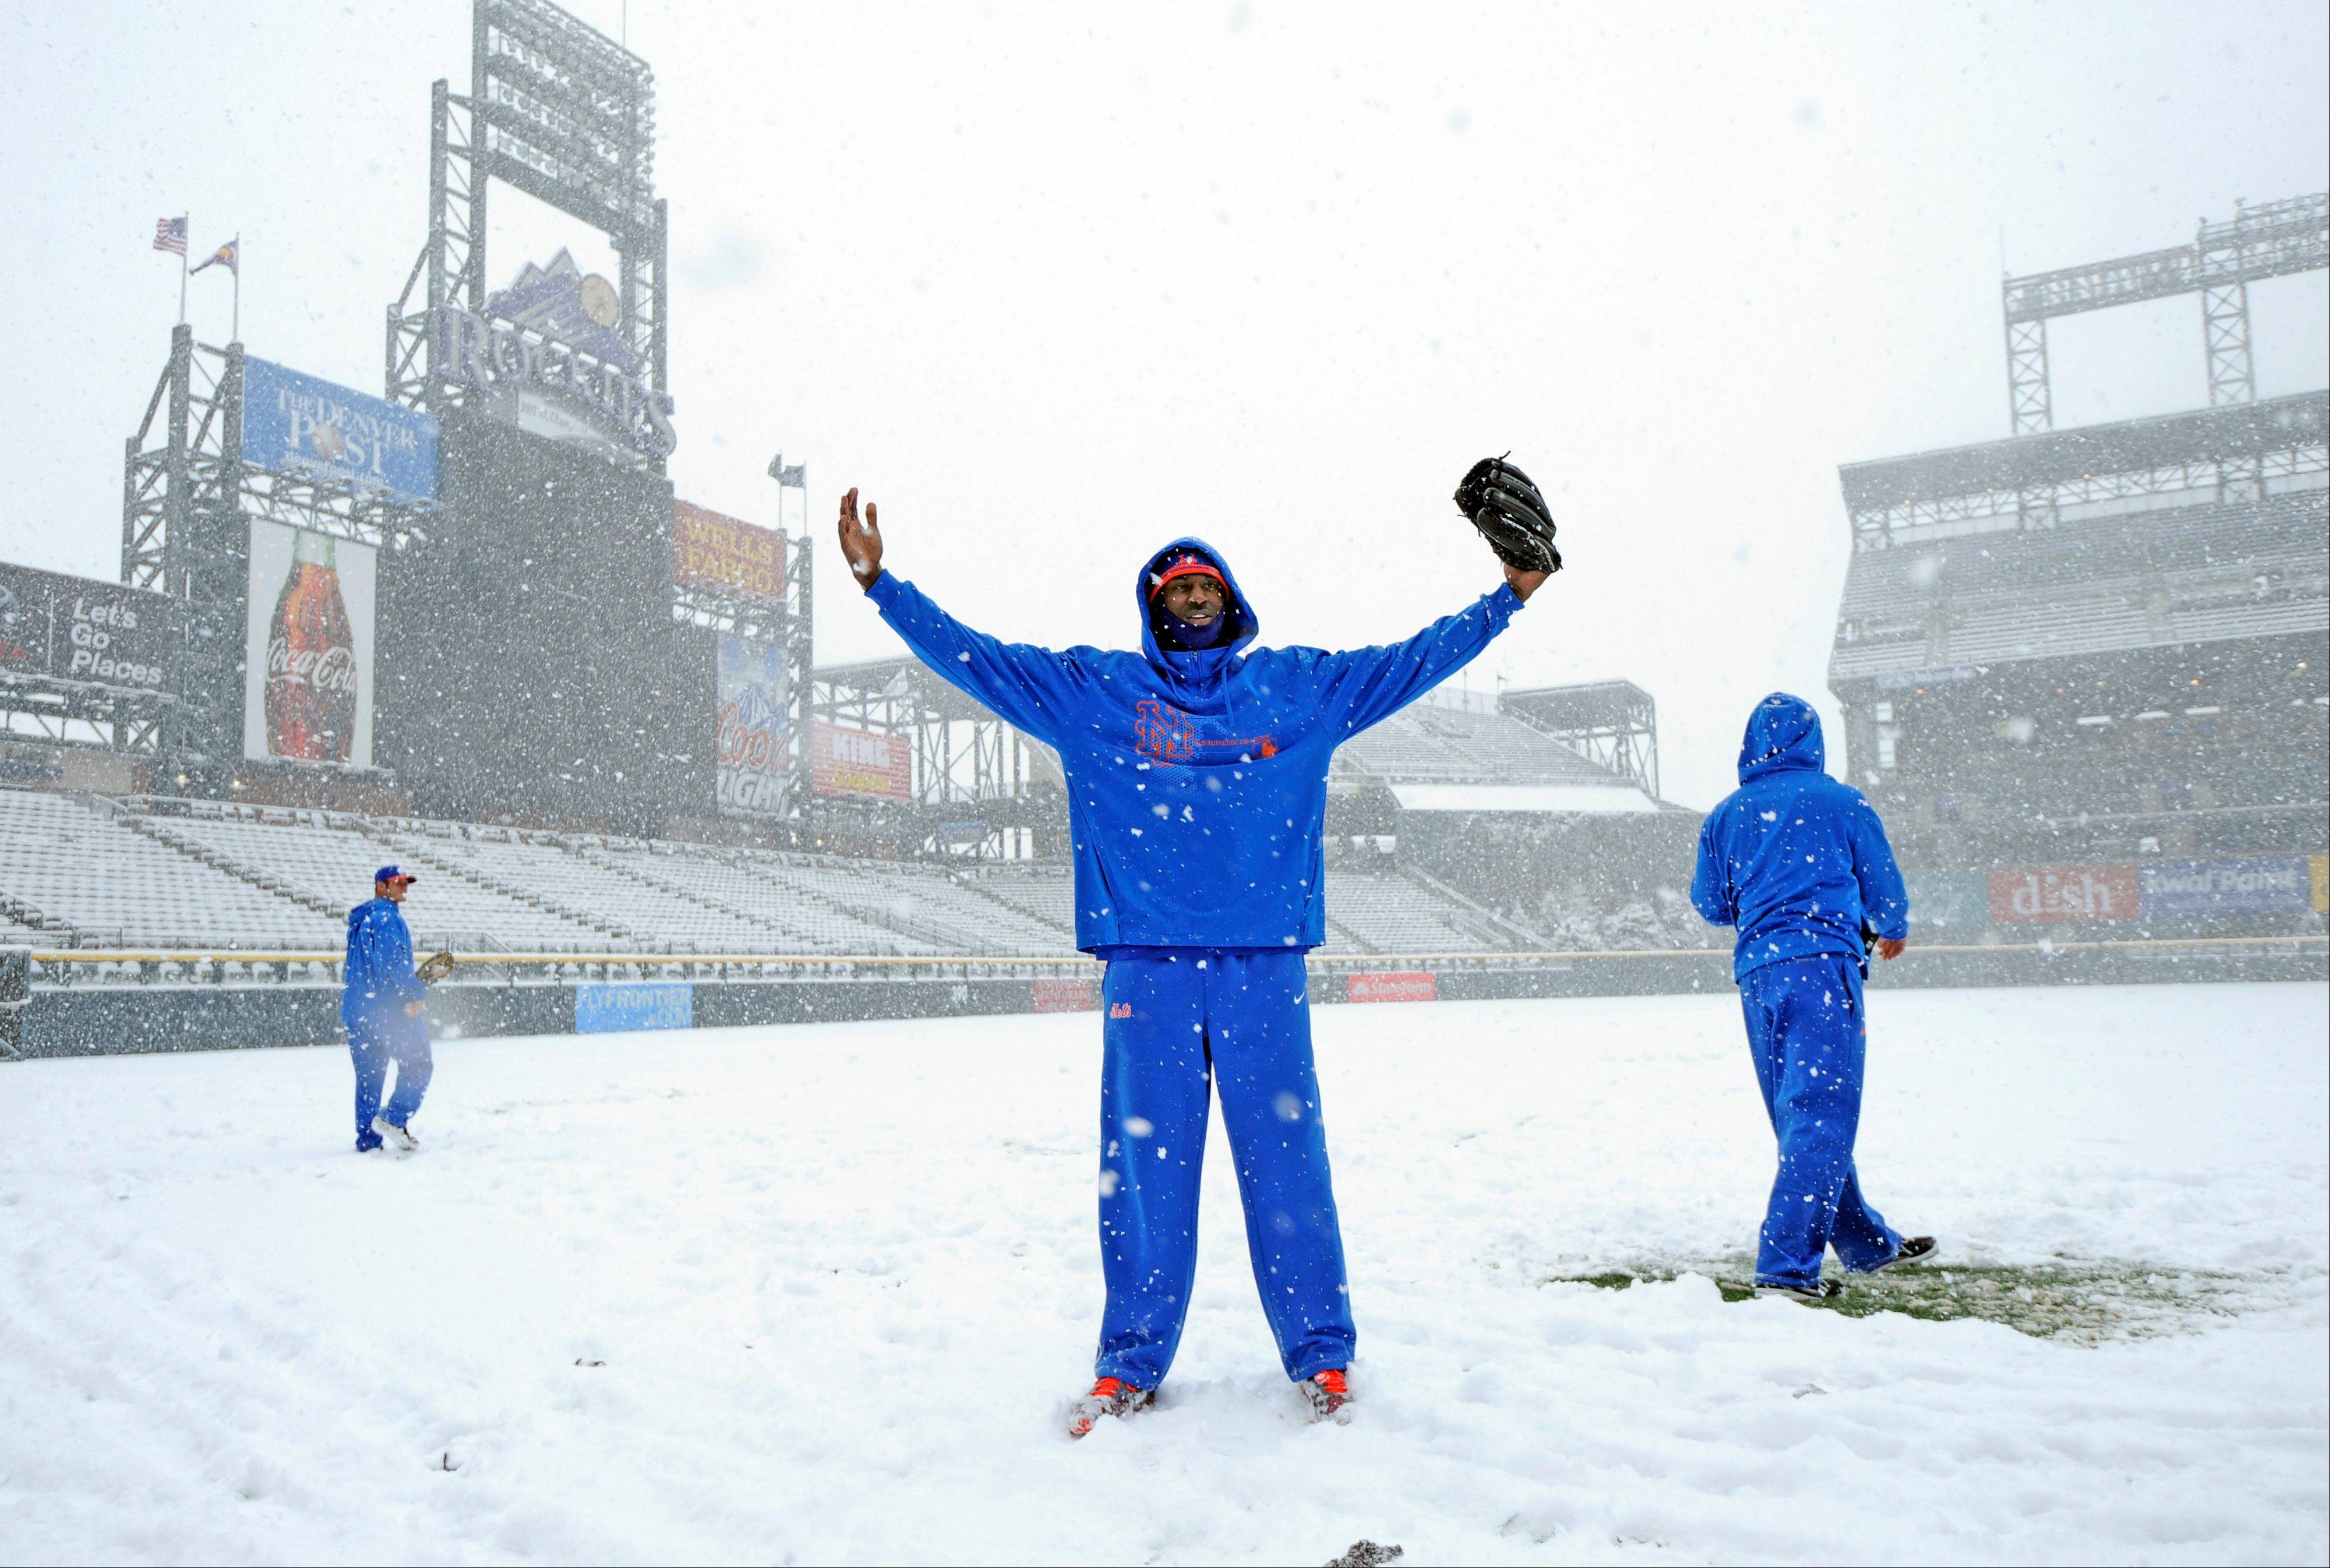 New York Mets pitcher LaTroy Hawkins poses in the snow before a scheduled baseball game against the Colorado Rockies, Monday, April 15, 2013, in Denver. The game was canceled.